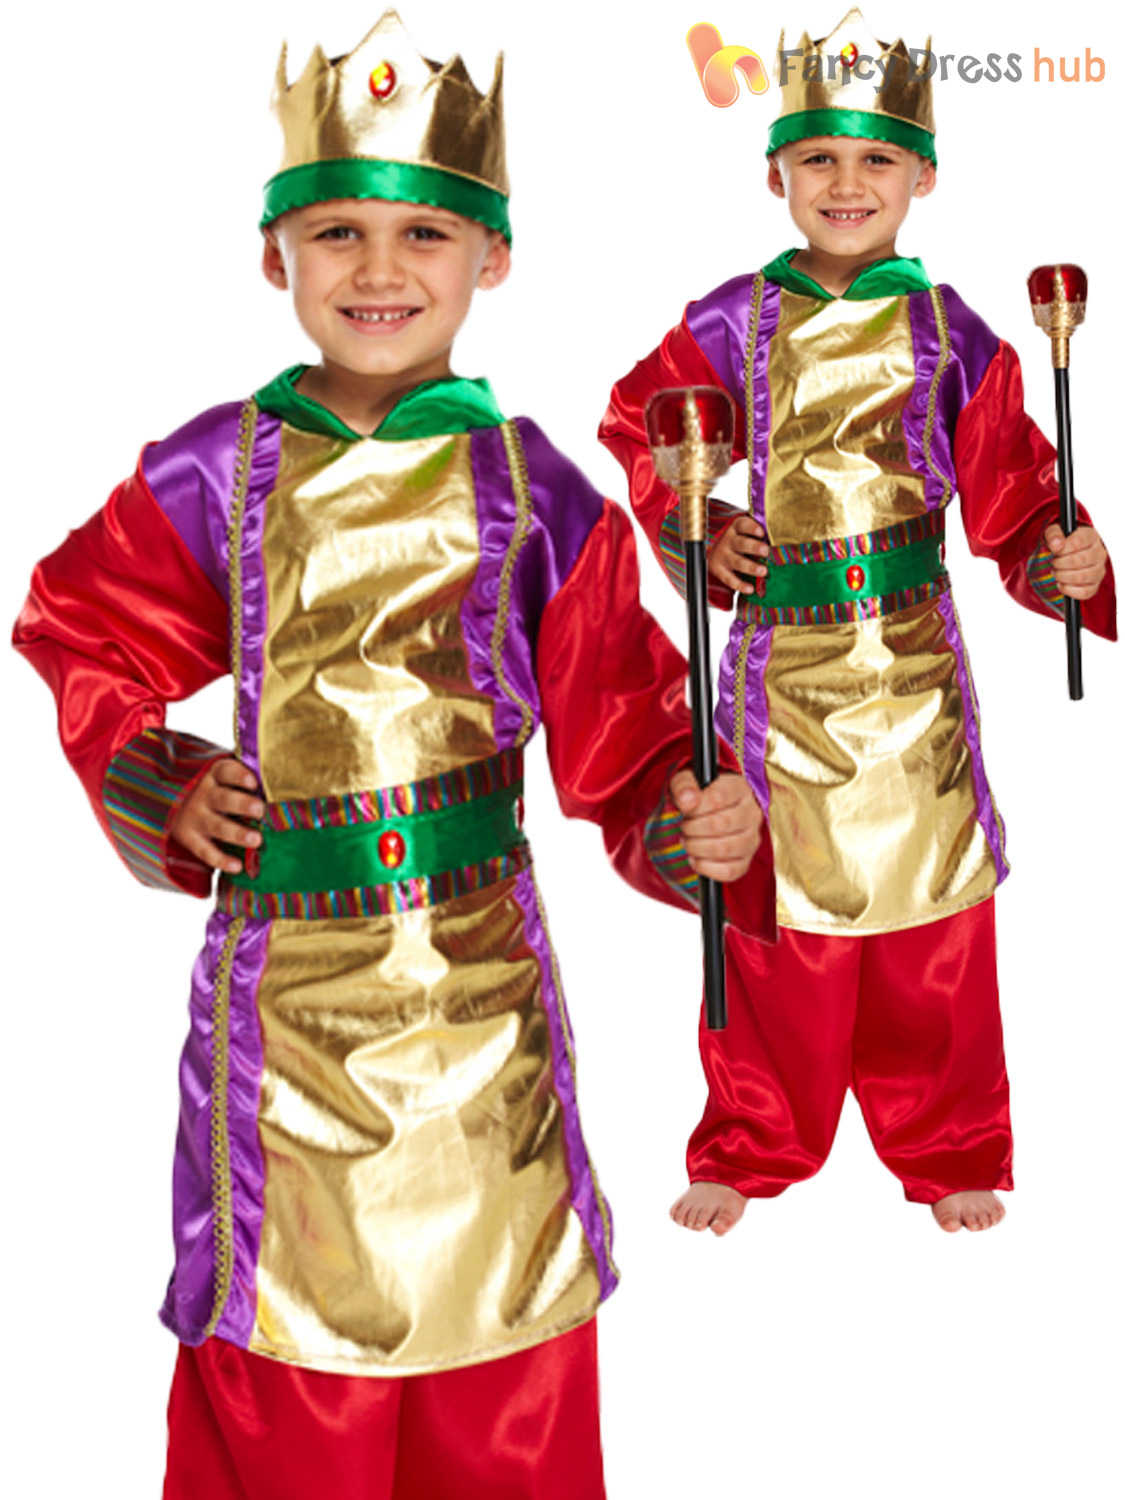 Christmas Fancy Dress Kids.Details About Boys King Costume Wise Man Christmas Fancy Dress Kids Child Nativity Play Outfit